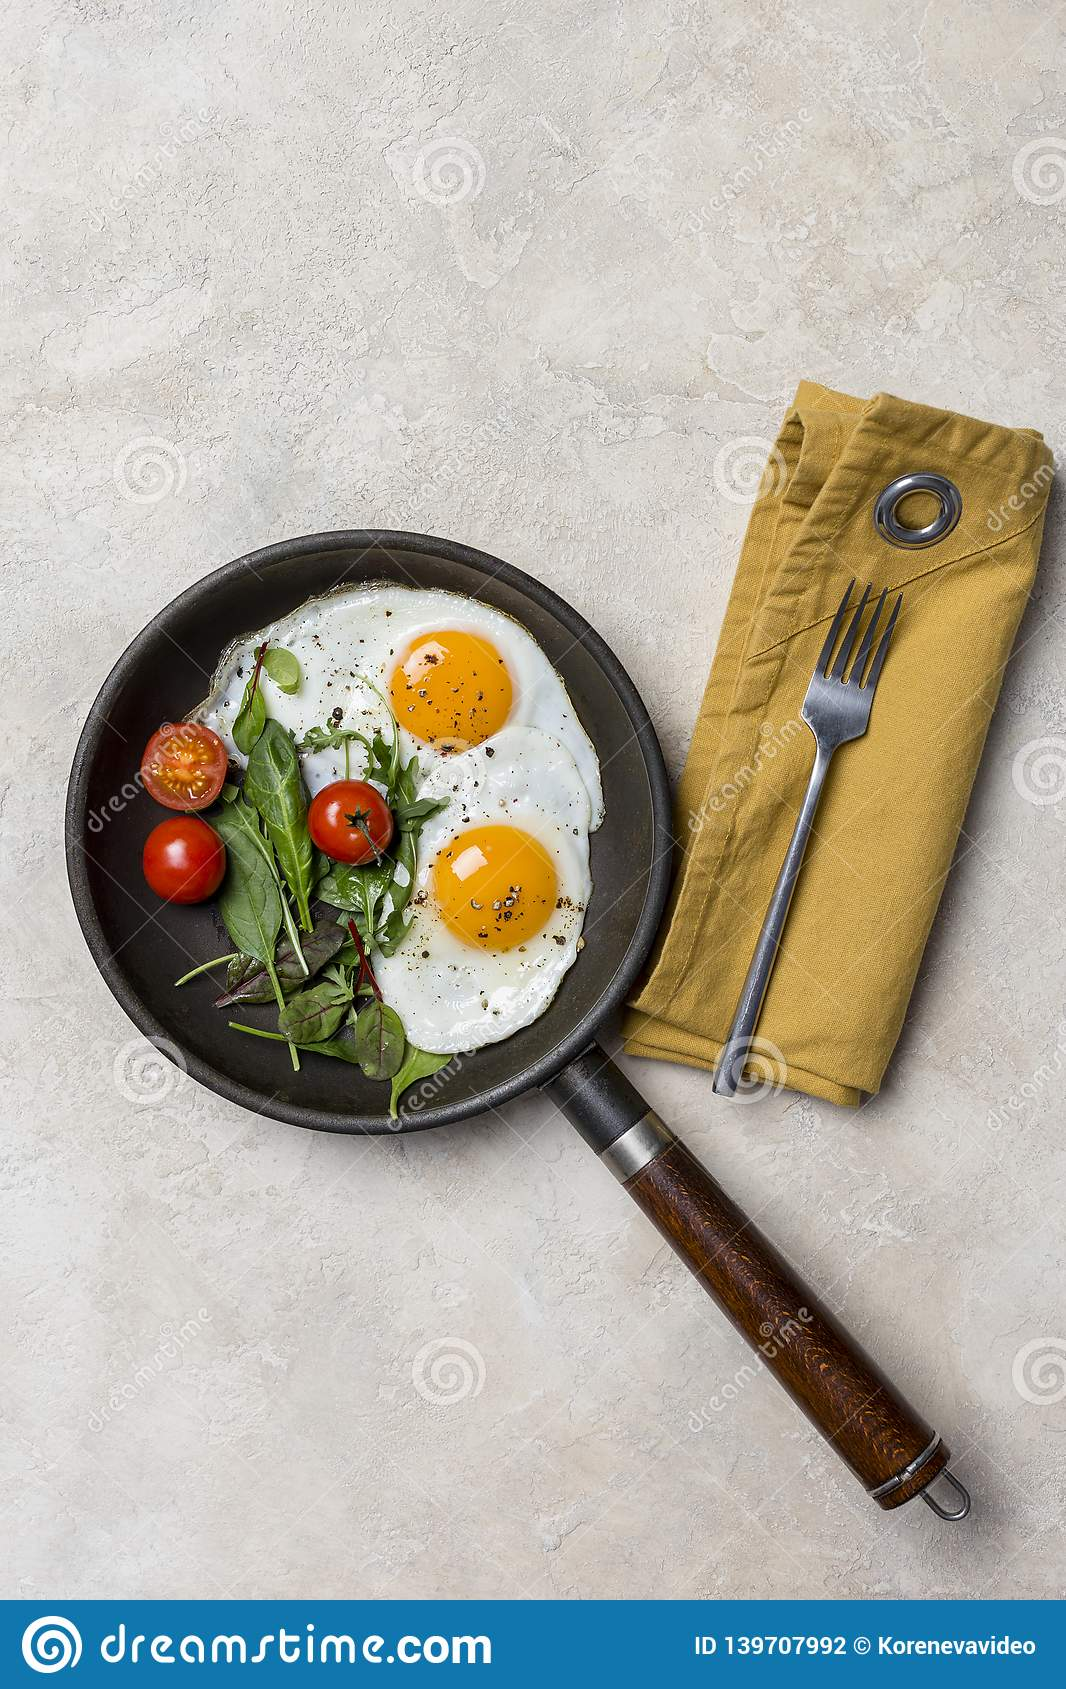 Pan and fried eggs for breakfast with herbs at beige background